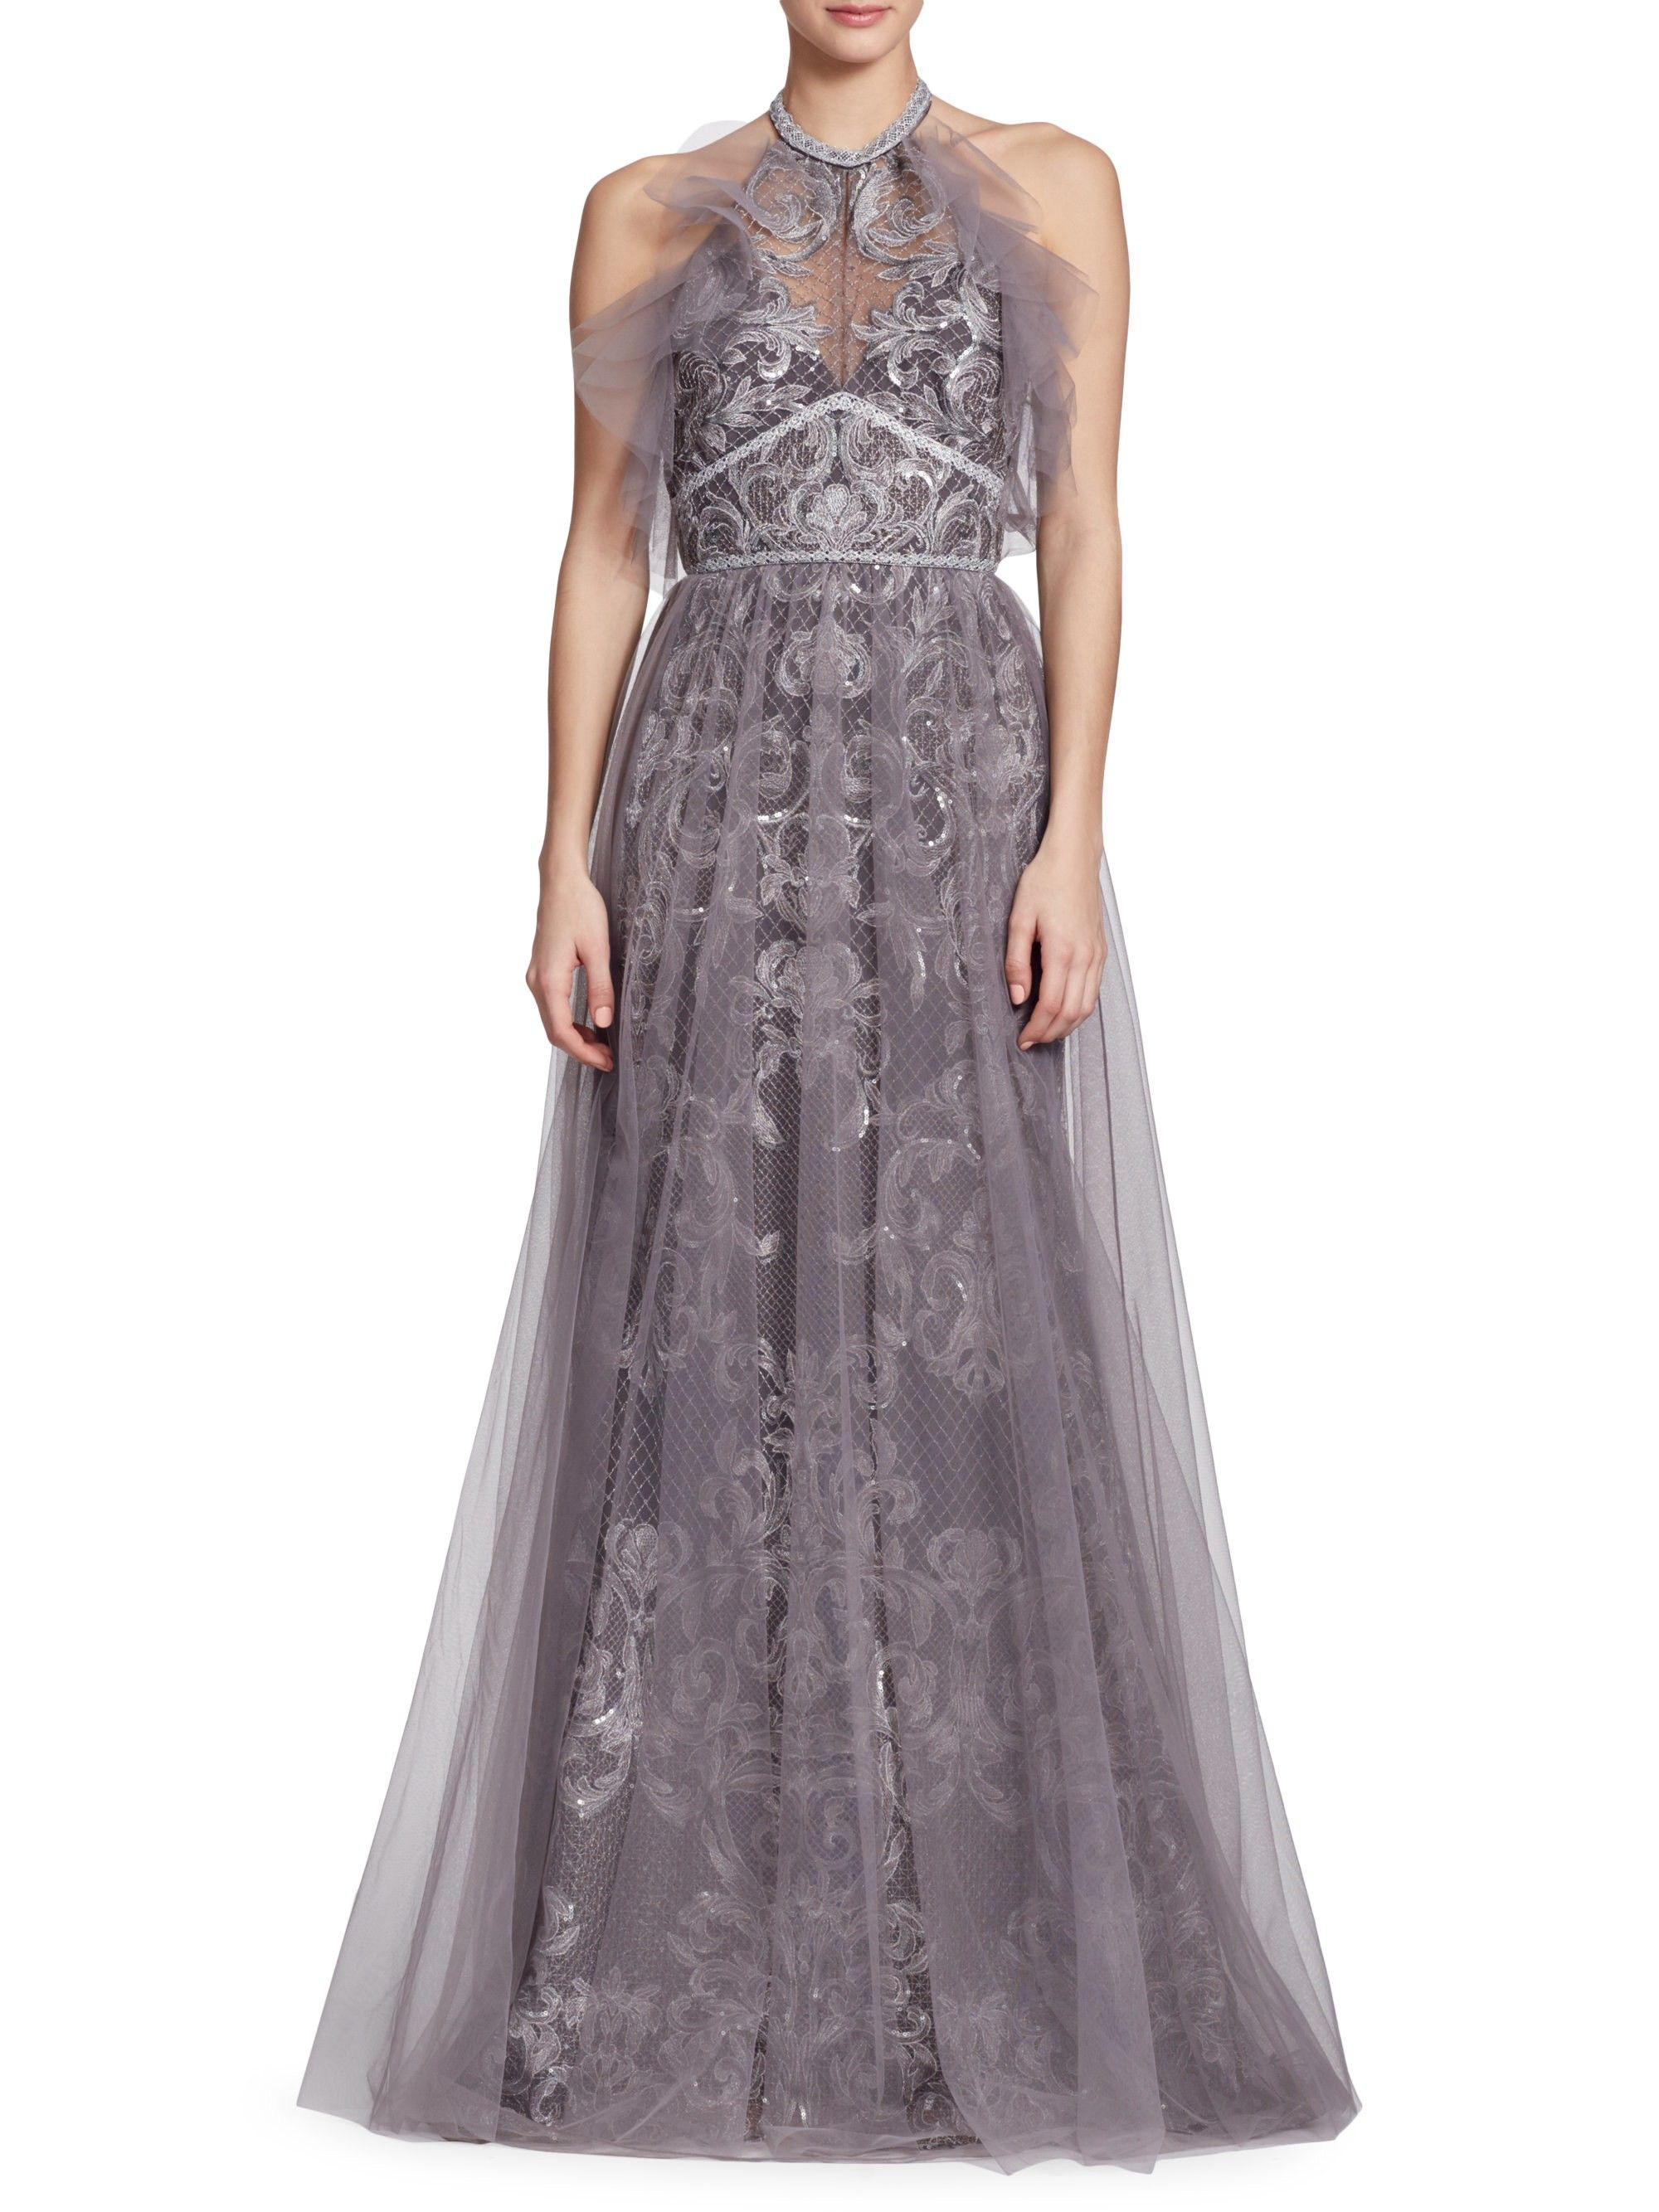 7d286c8eecf0b Marchesa Notte Embroidered Halter Tulle Gown - Silver 6 in 2019 ...